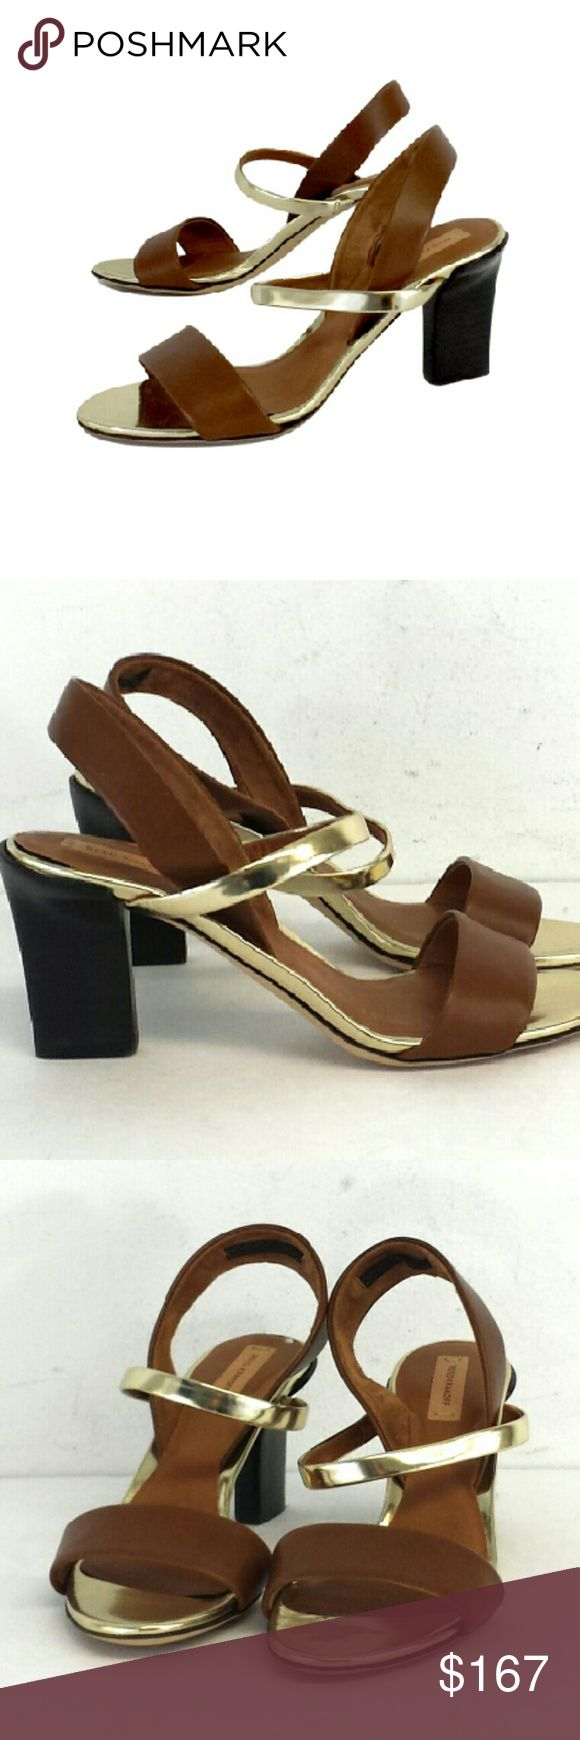 "Reed Krakoff- Brown & Gold Leather Sandal Heels Sz Size 6 (EU 36) Brown & Gold Sandal Heels Leather soles Leather upper Made in Italy Lightly padded insoles Slingbacks Heel Height 3"" Reed Krakoff Shoes Heels"